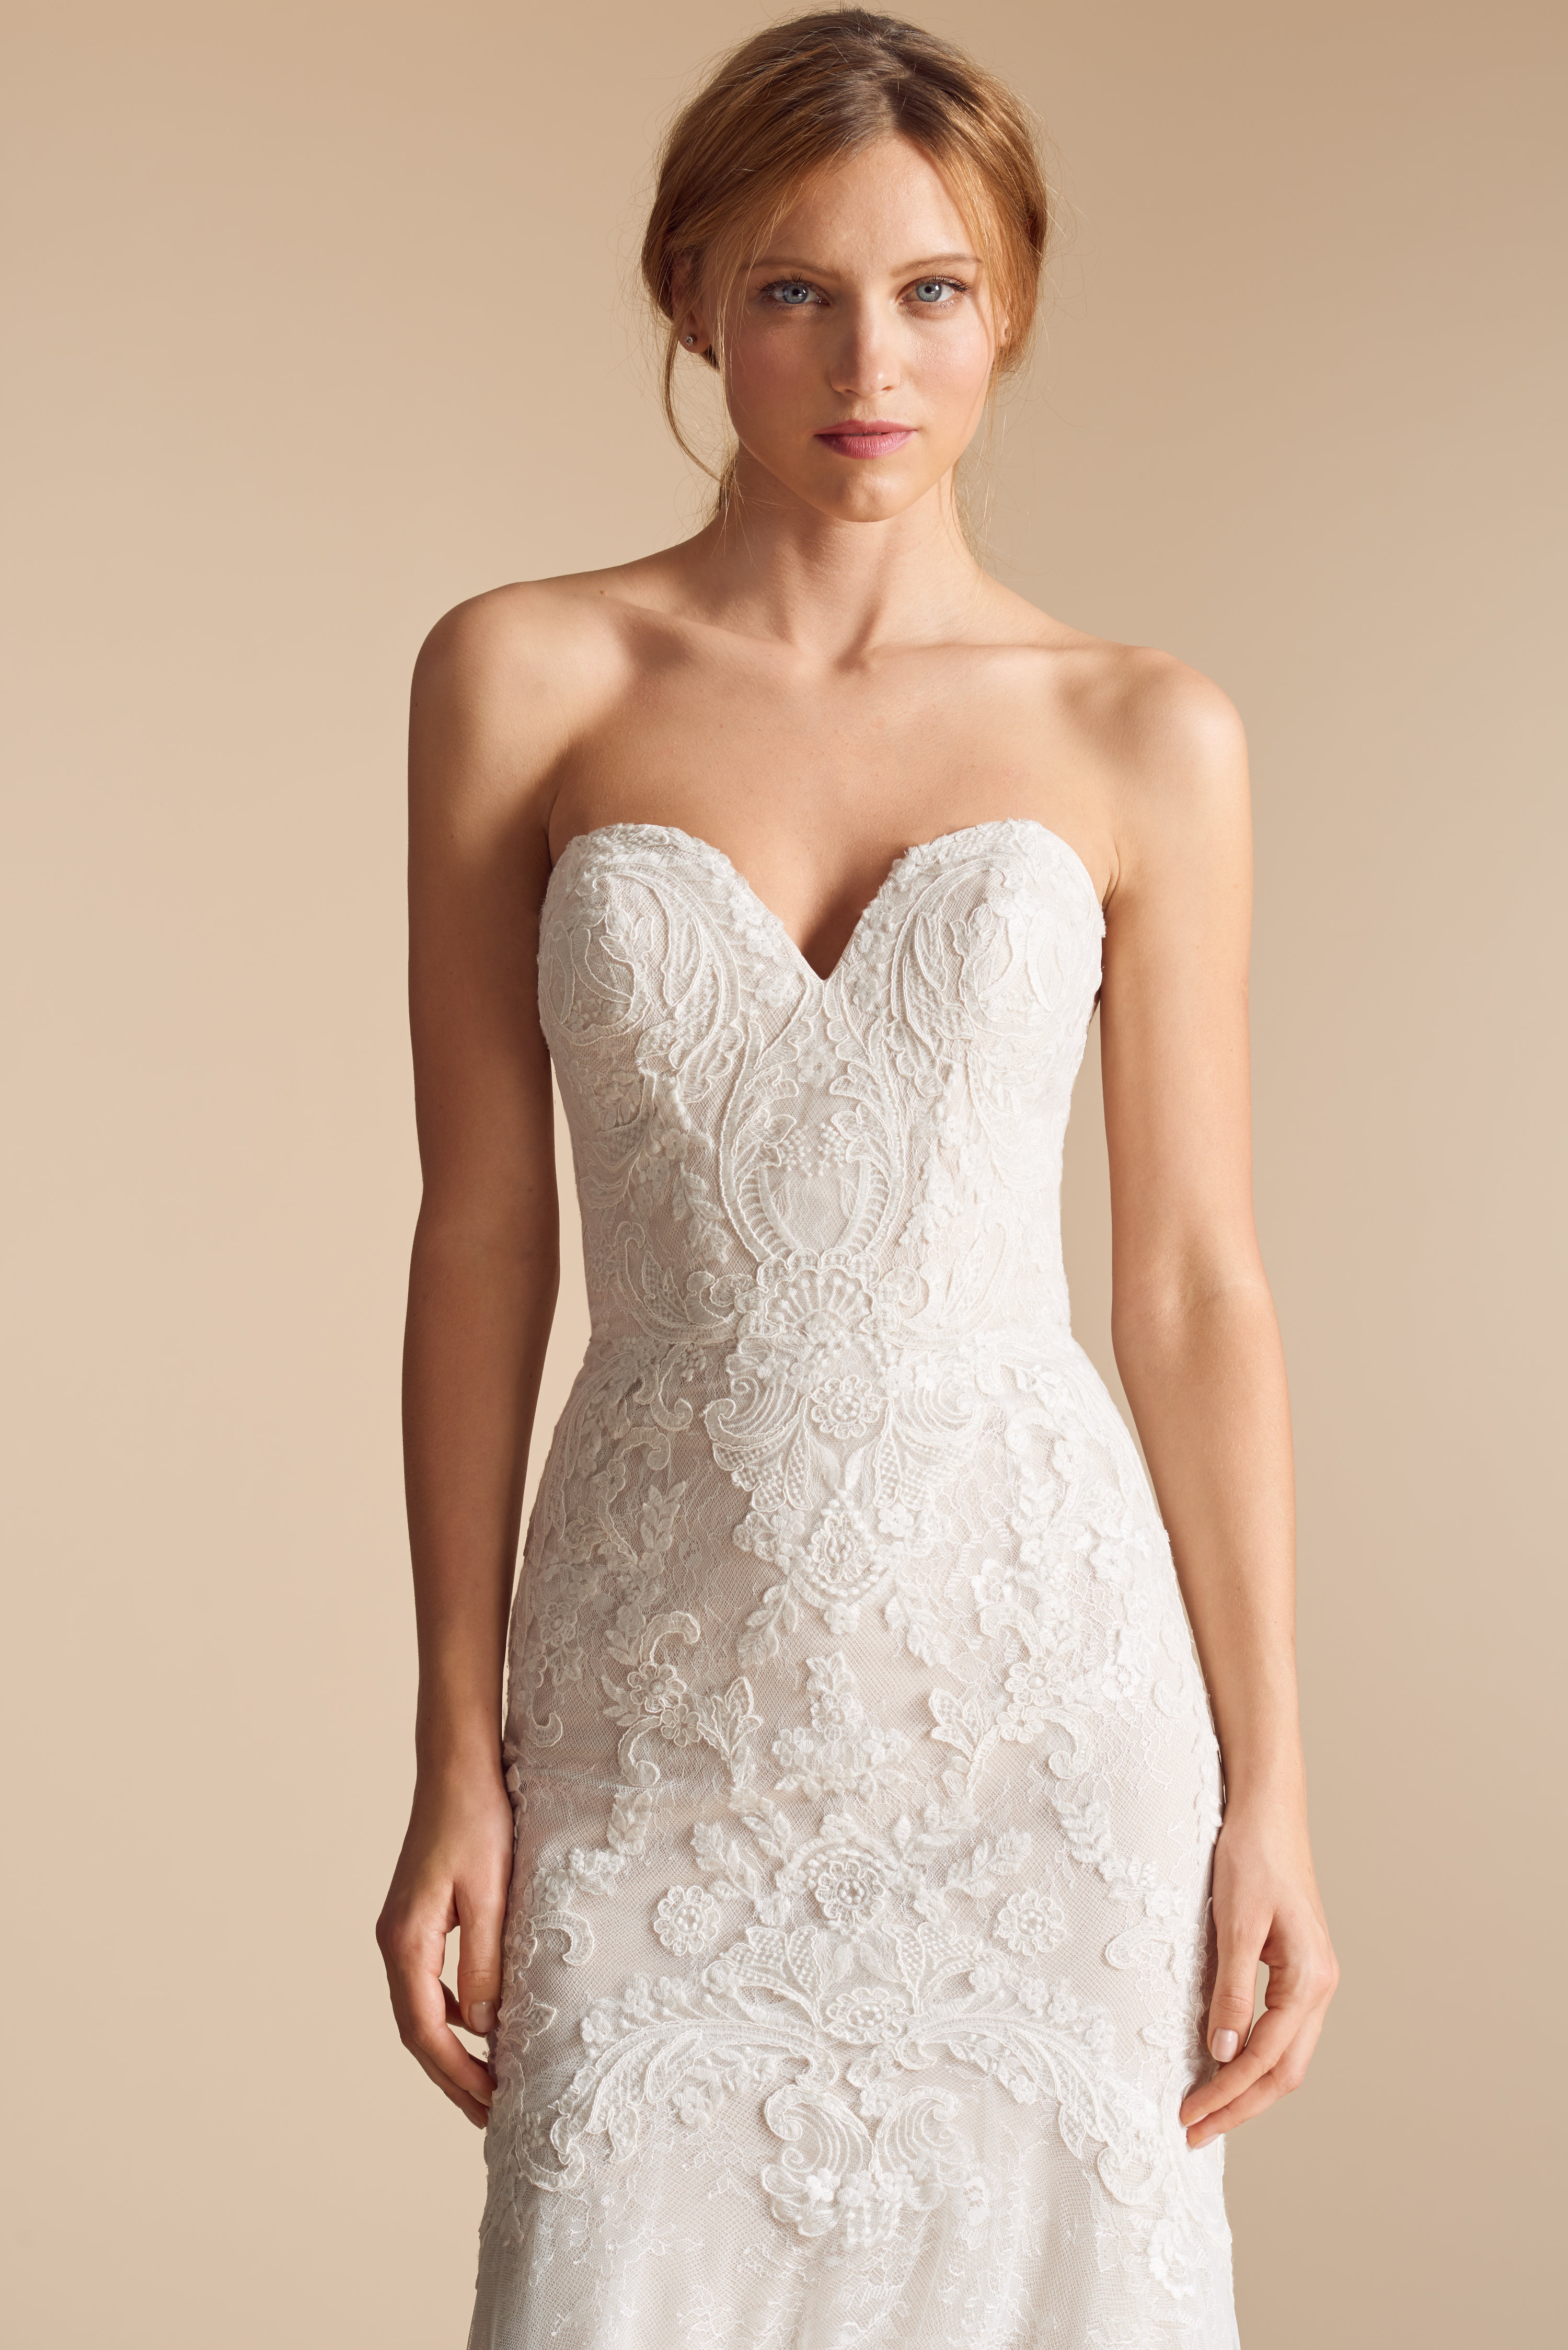 Bridal Gowns and Wedding Dresses by JLM Couture - Style 7804 Naomi